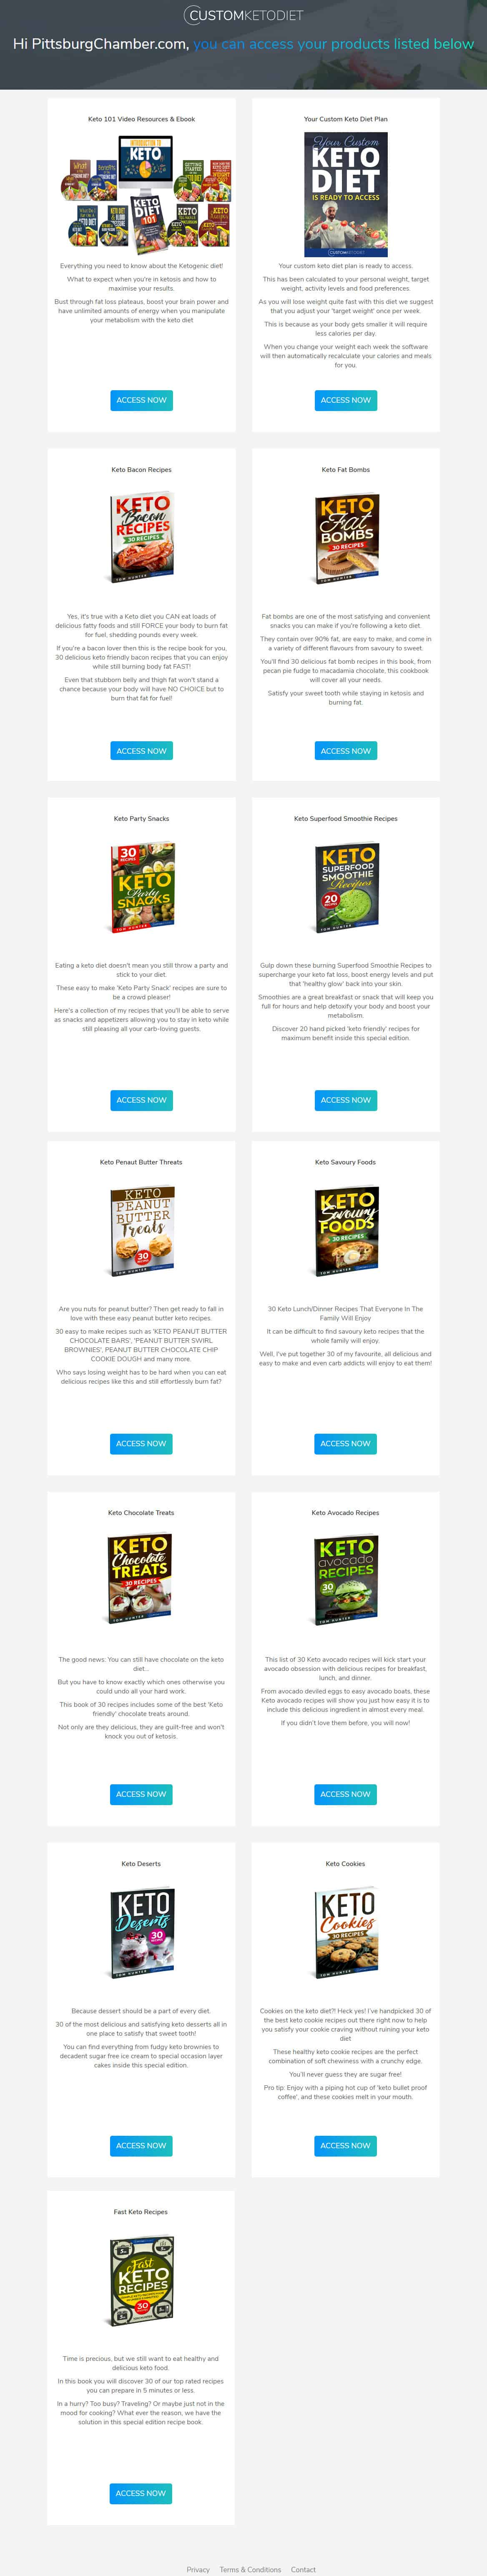 Offers On Plan  Custom Keto Diet 2020